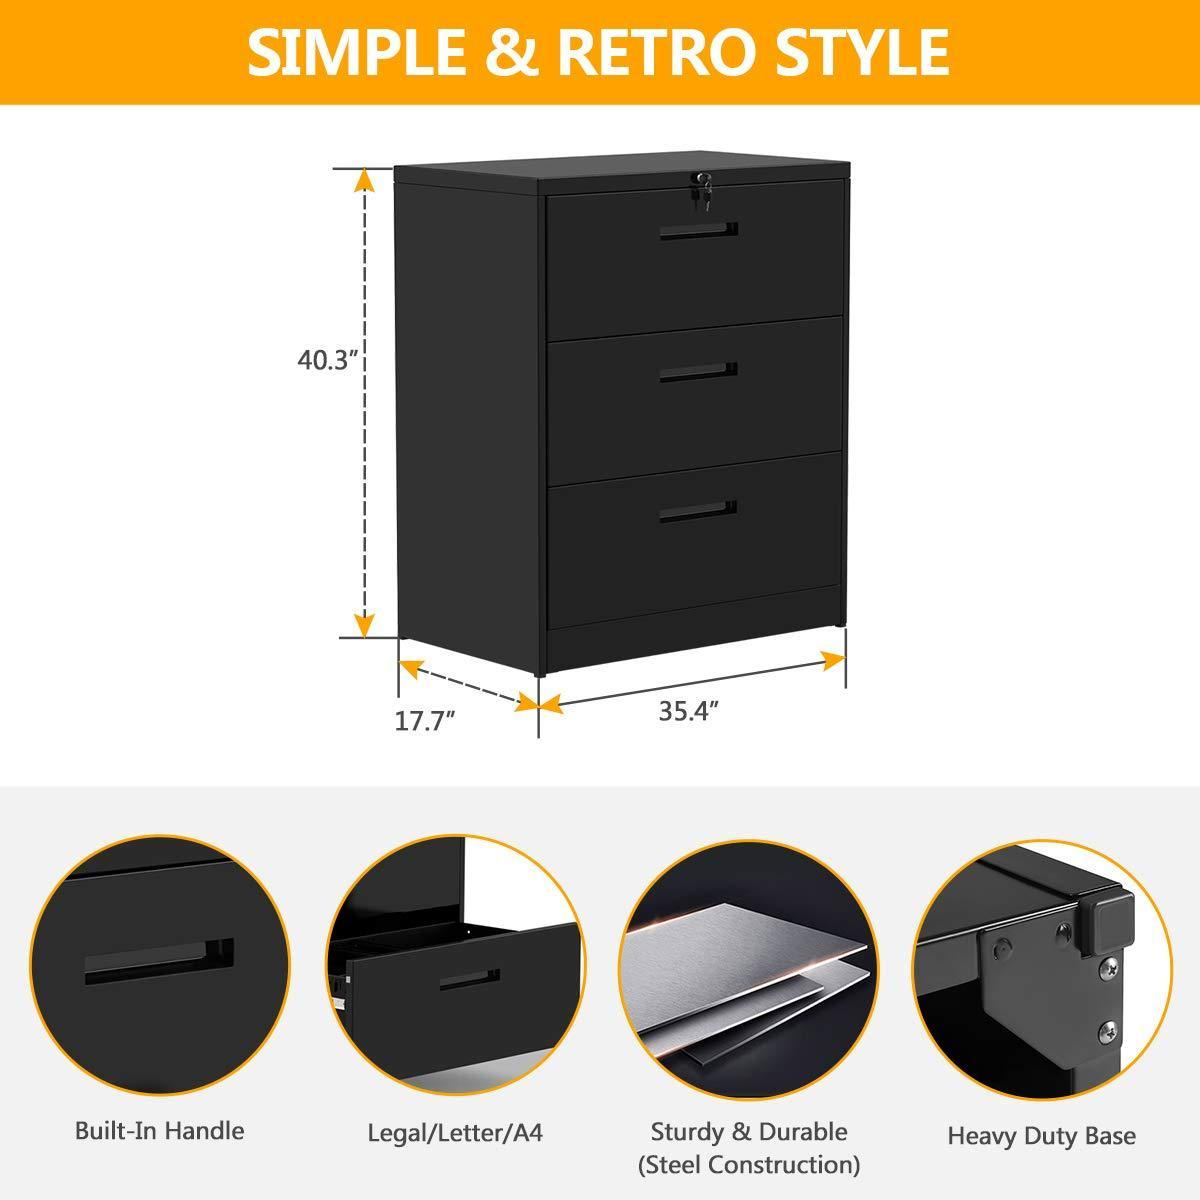 Related 3 drawers white lateral file cabinet with lock lockable heavy duty filing cabinet steel construction blackcurve handle